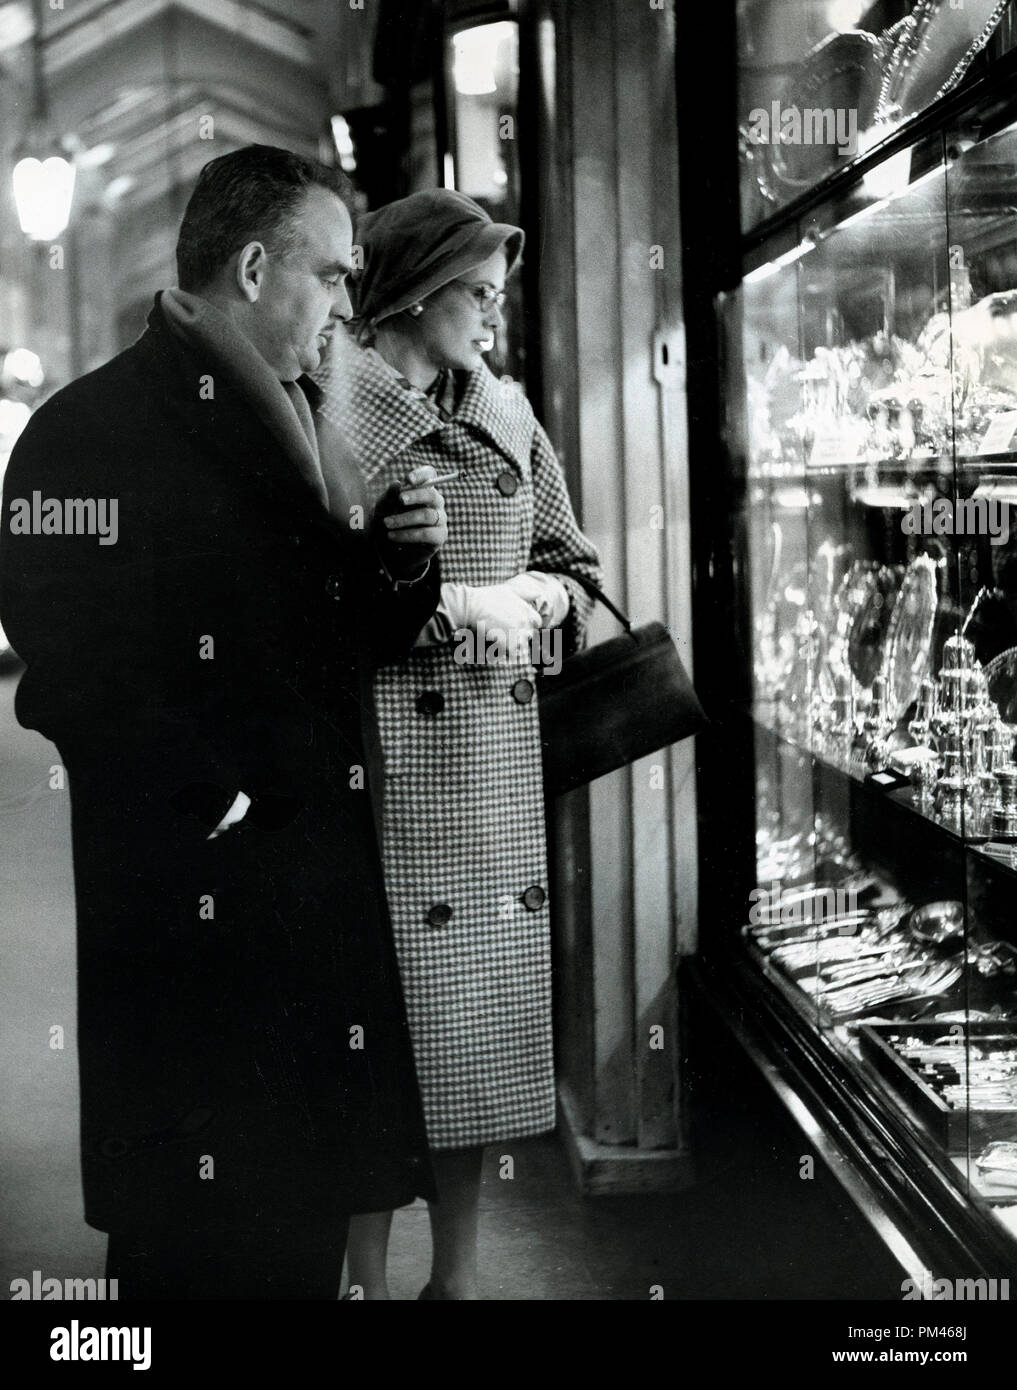 Prince Rainier and Princess Grace go shopping, December 4,1959. File Reference #1061 008THA © JRC /The Hollywood Archive - All Rights Reserved. Stock Photo